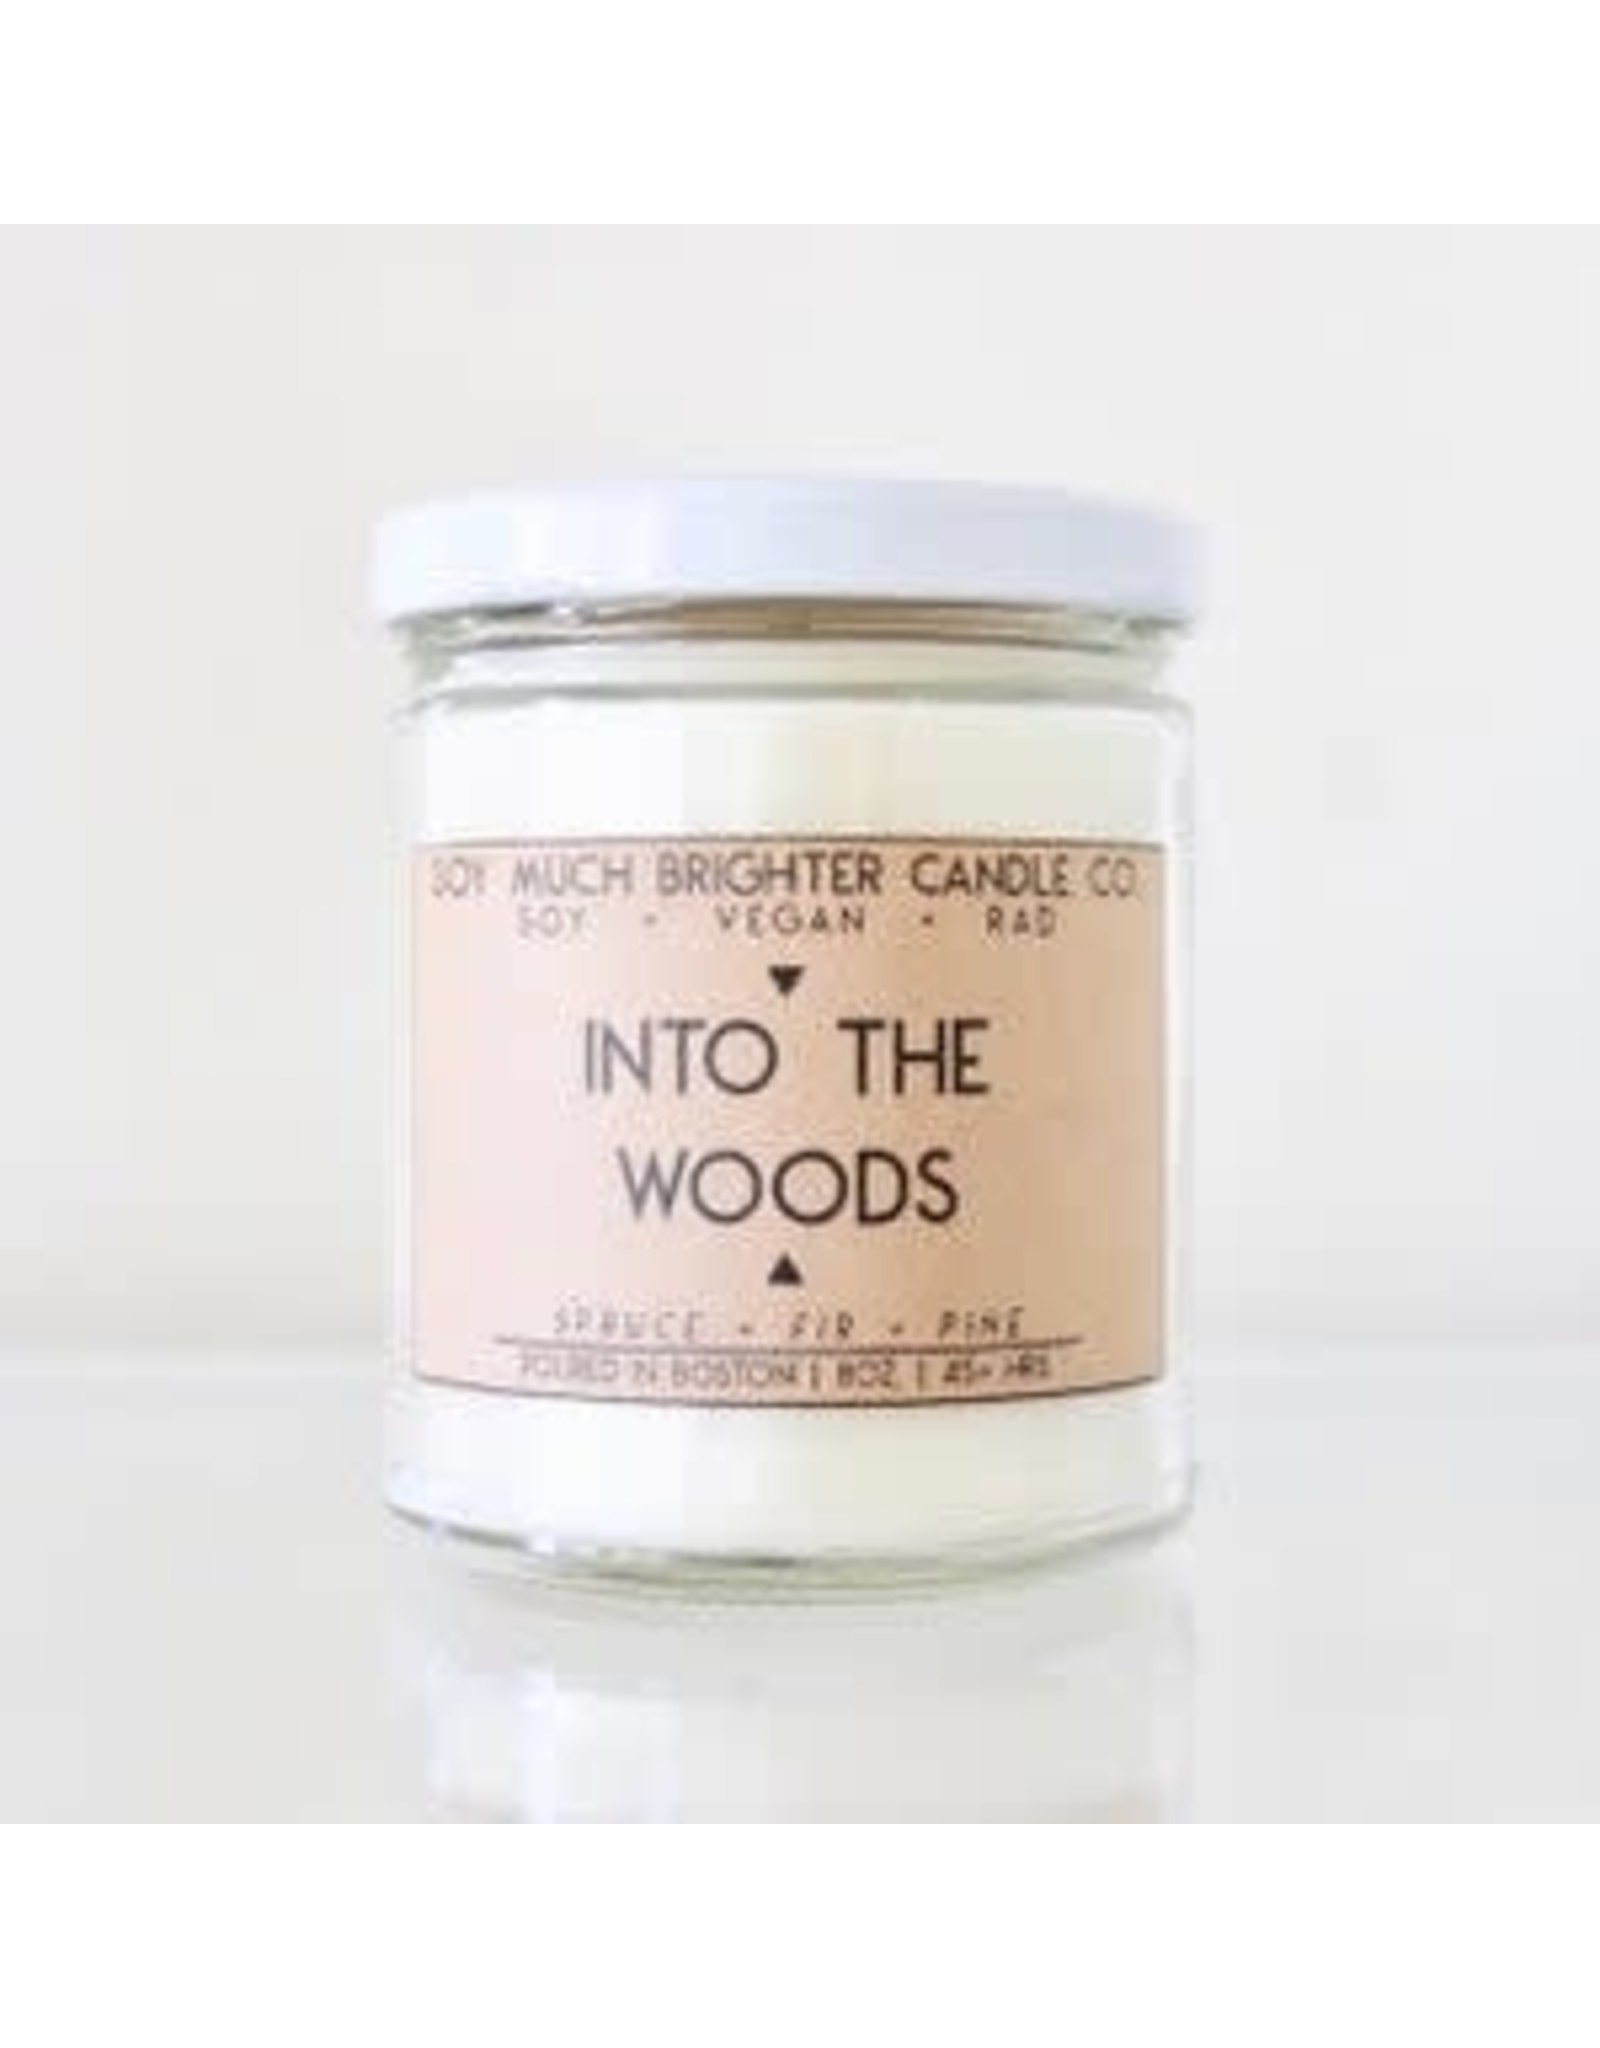 SMB Candle: Into The Woods- 8oz.